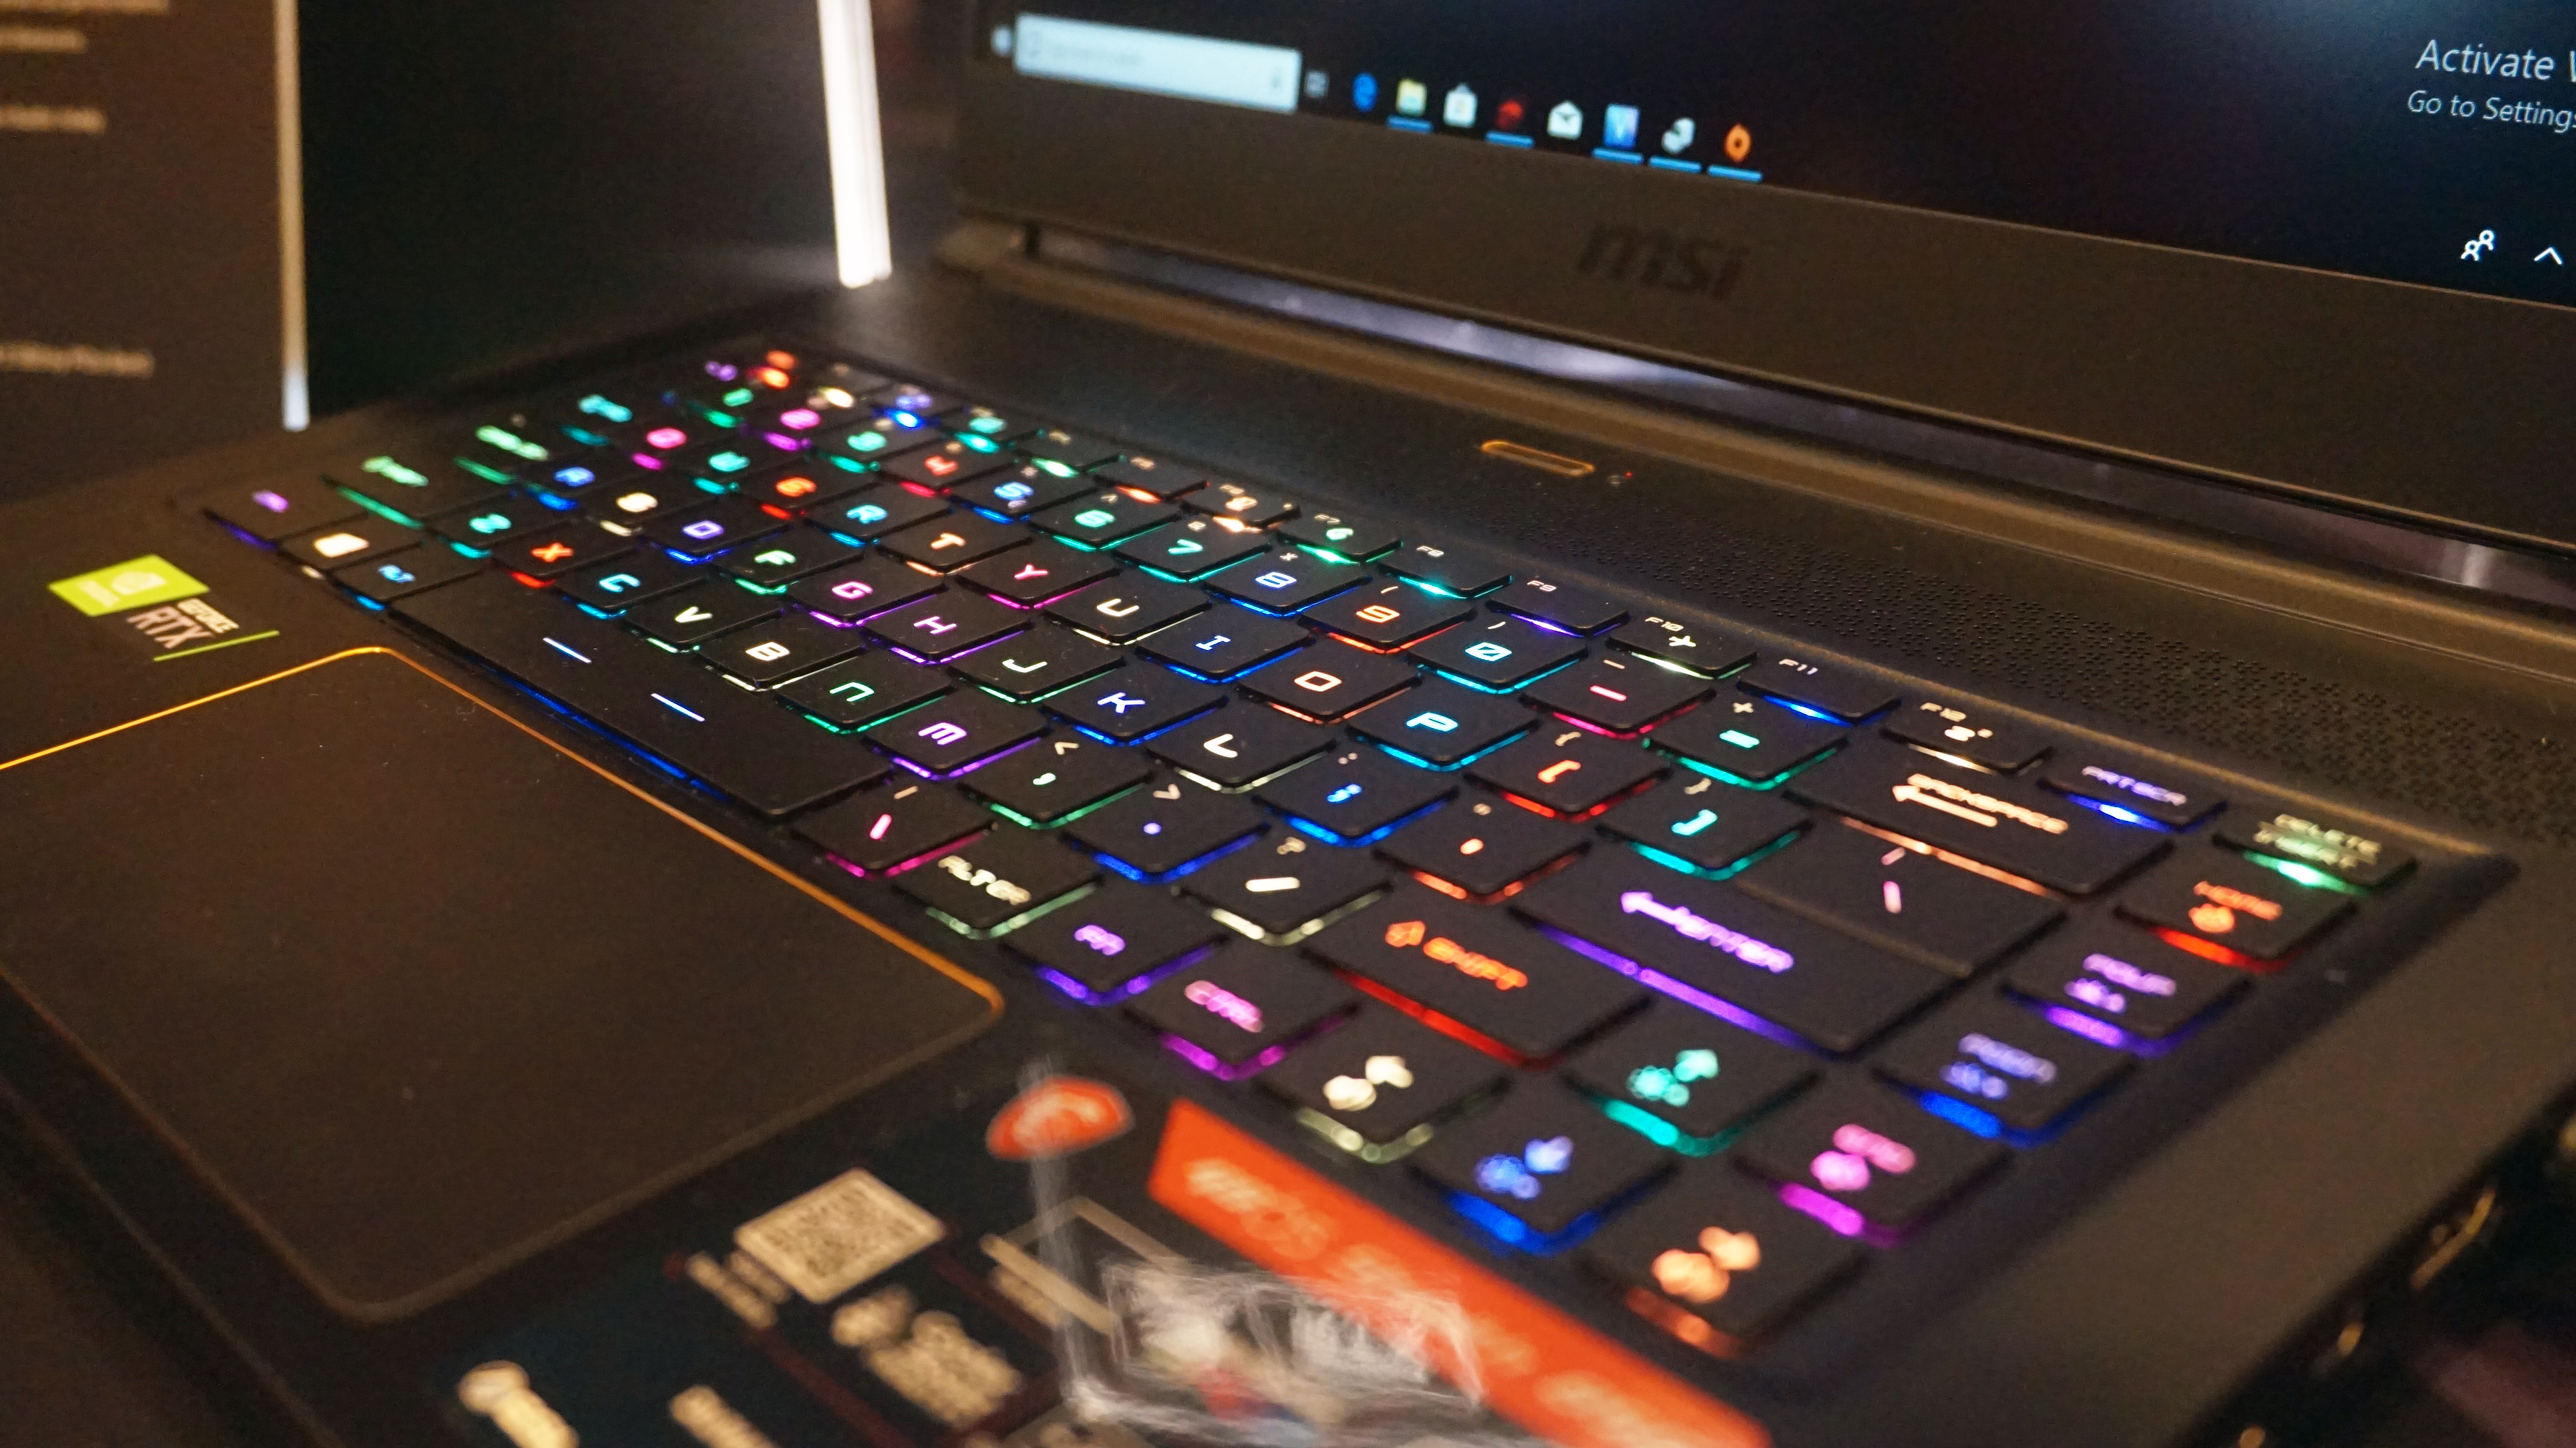 MSI GS65 Stealth (2019) review: hands on with MSI's new RTX